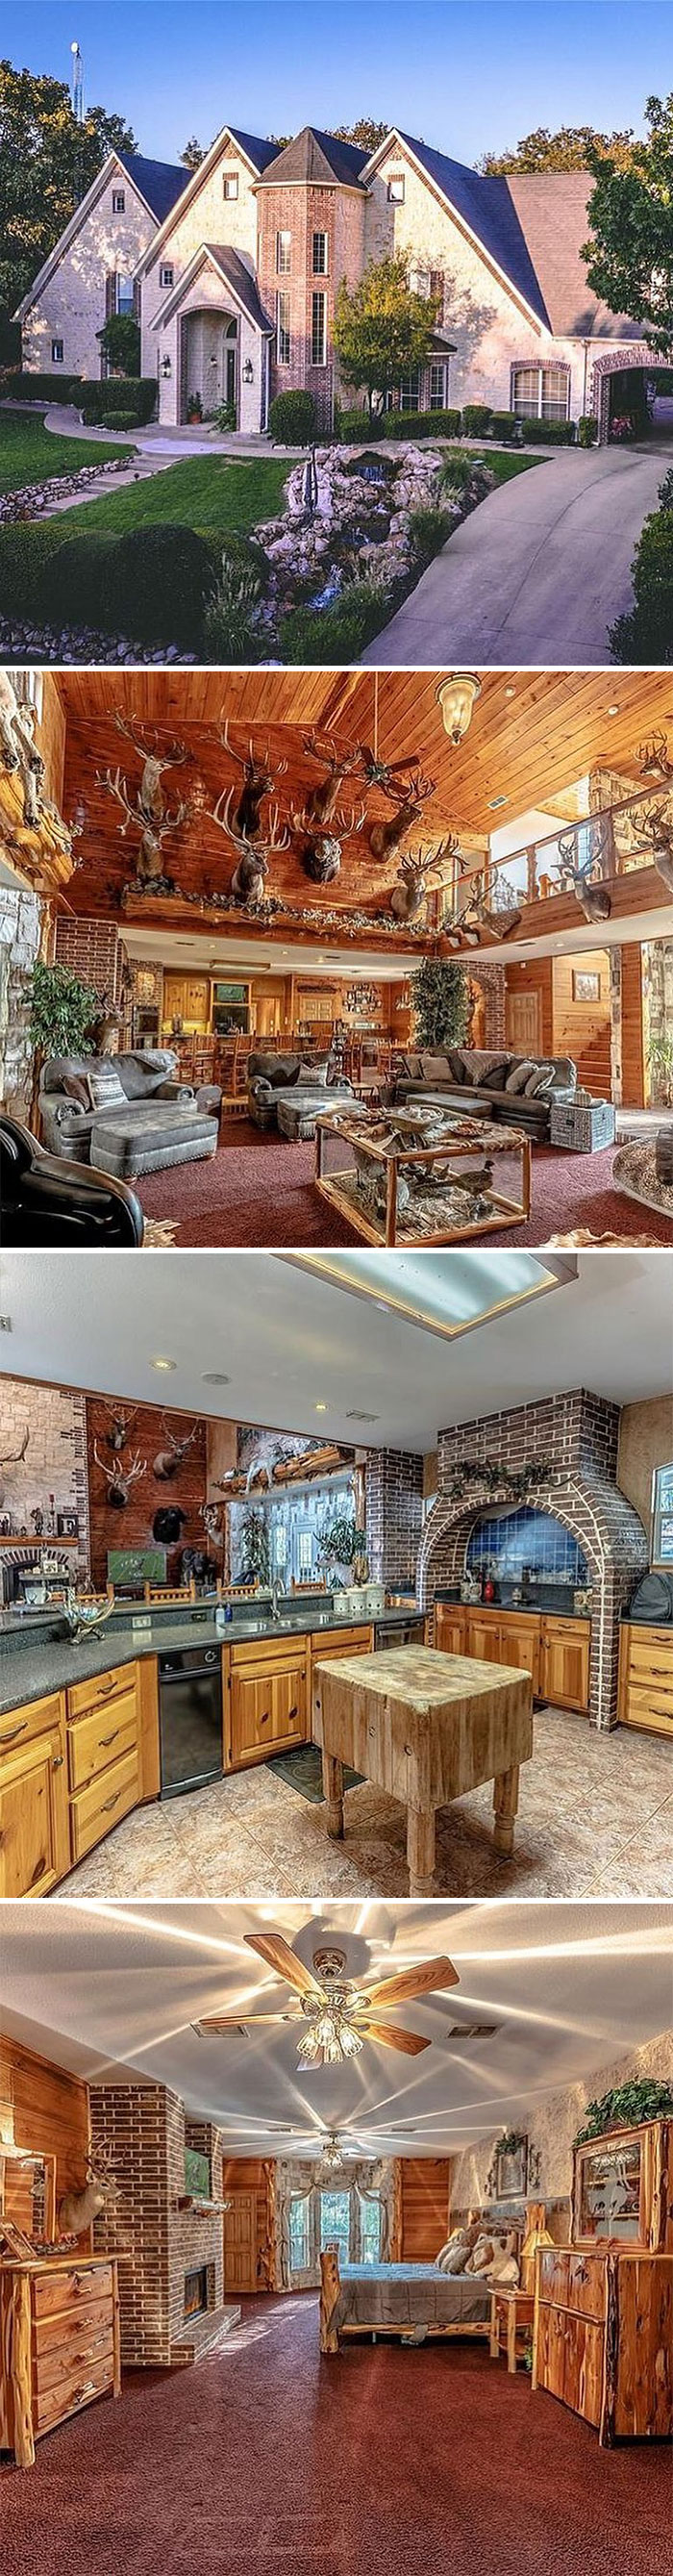 How Do You Walk Around In The Middle Of The Night I'd Be Scared. $1,395,000. 4 Bd, 6 Ba. 8,614 Sf